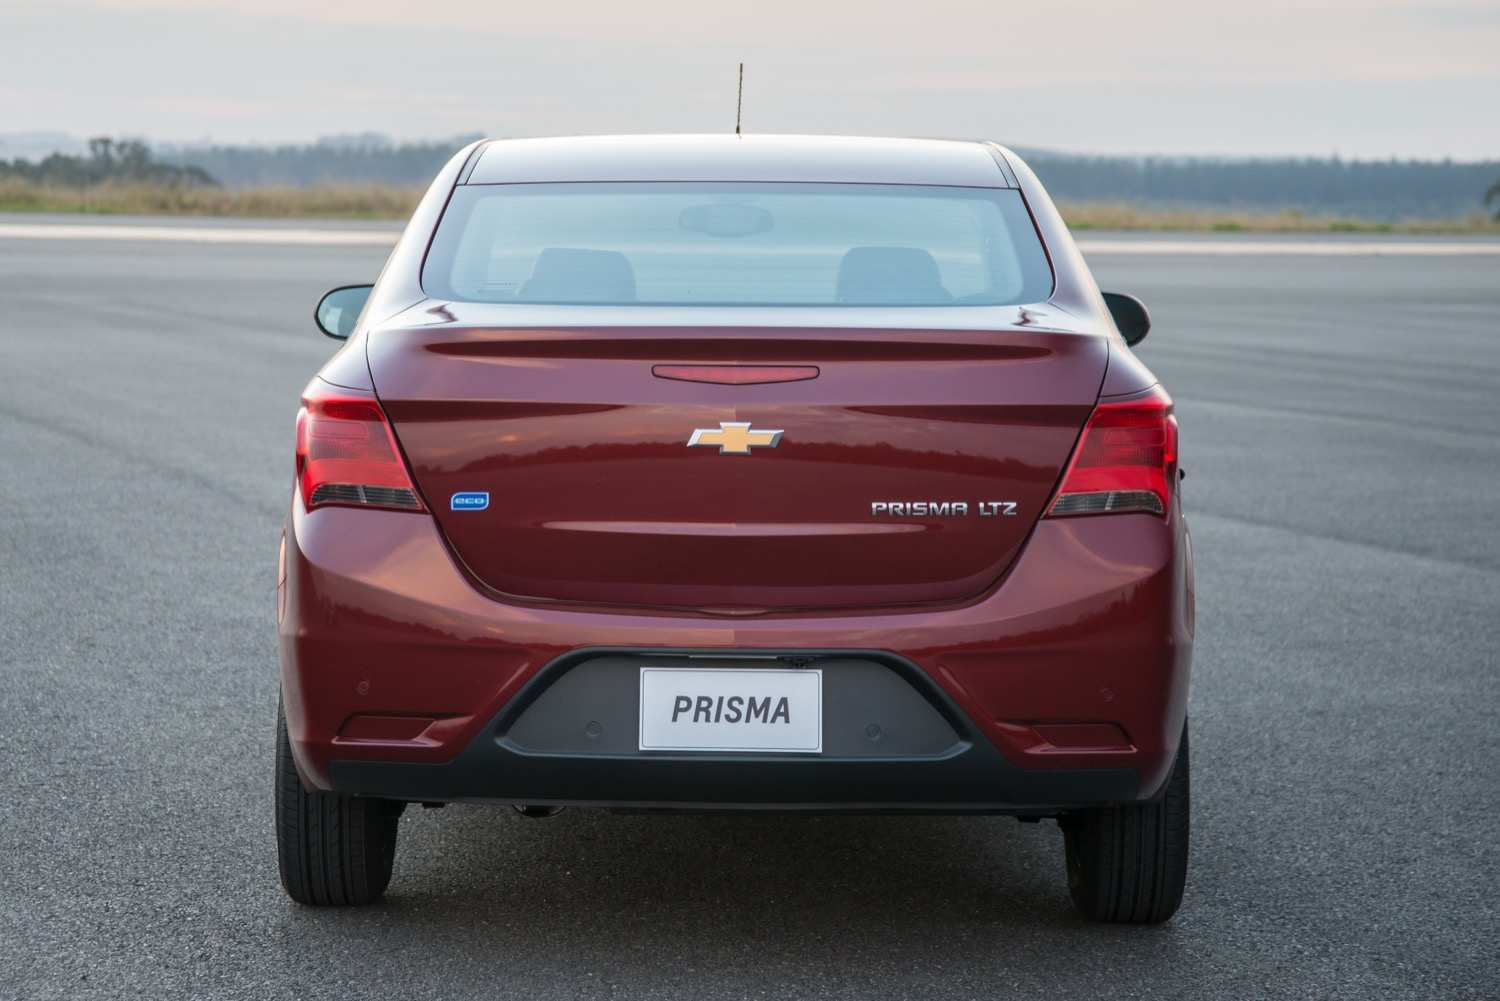 54 Concept of Best Prisma Chevrolet 2019 Rumor Exterior for Best Prisma Chevrolet 2019 Rumor